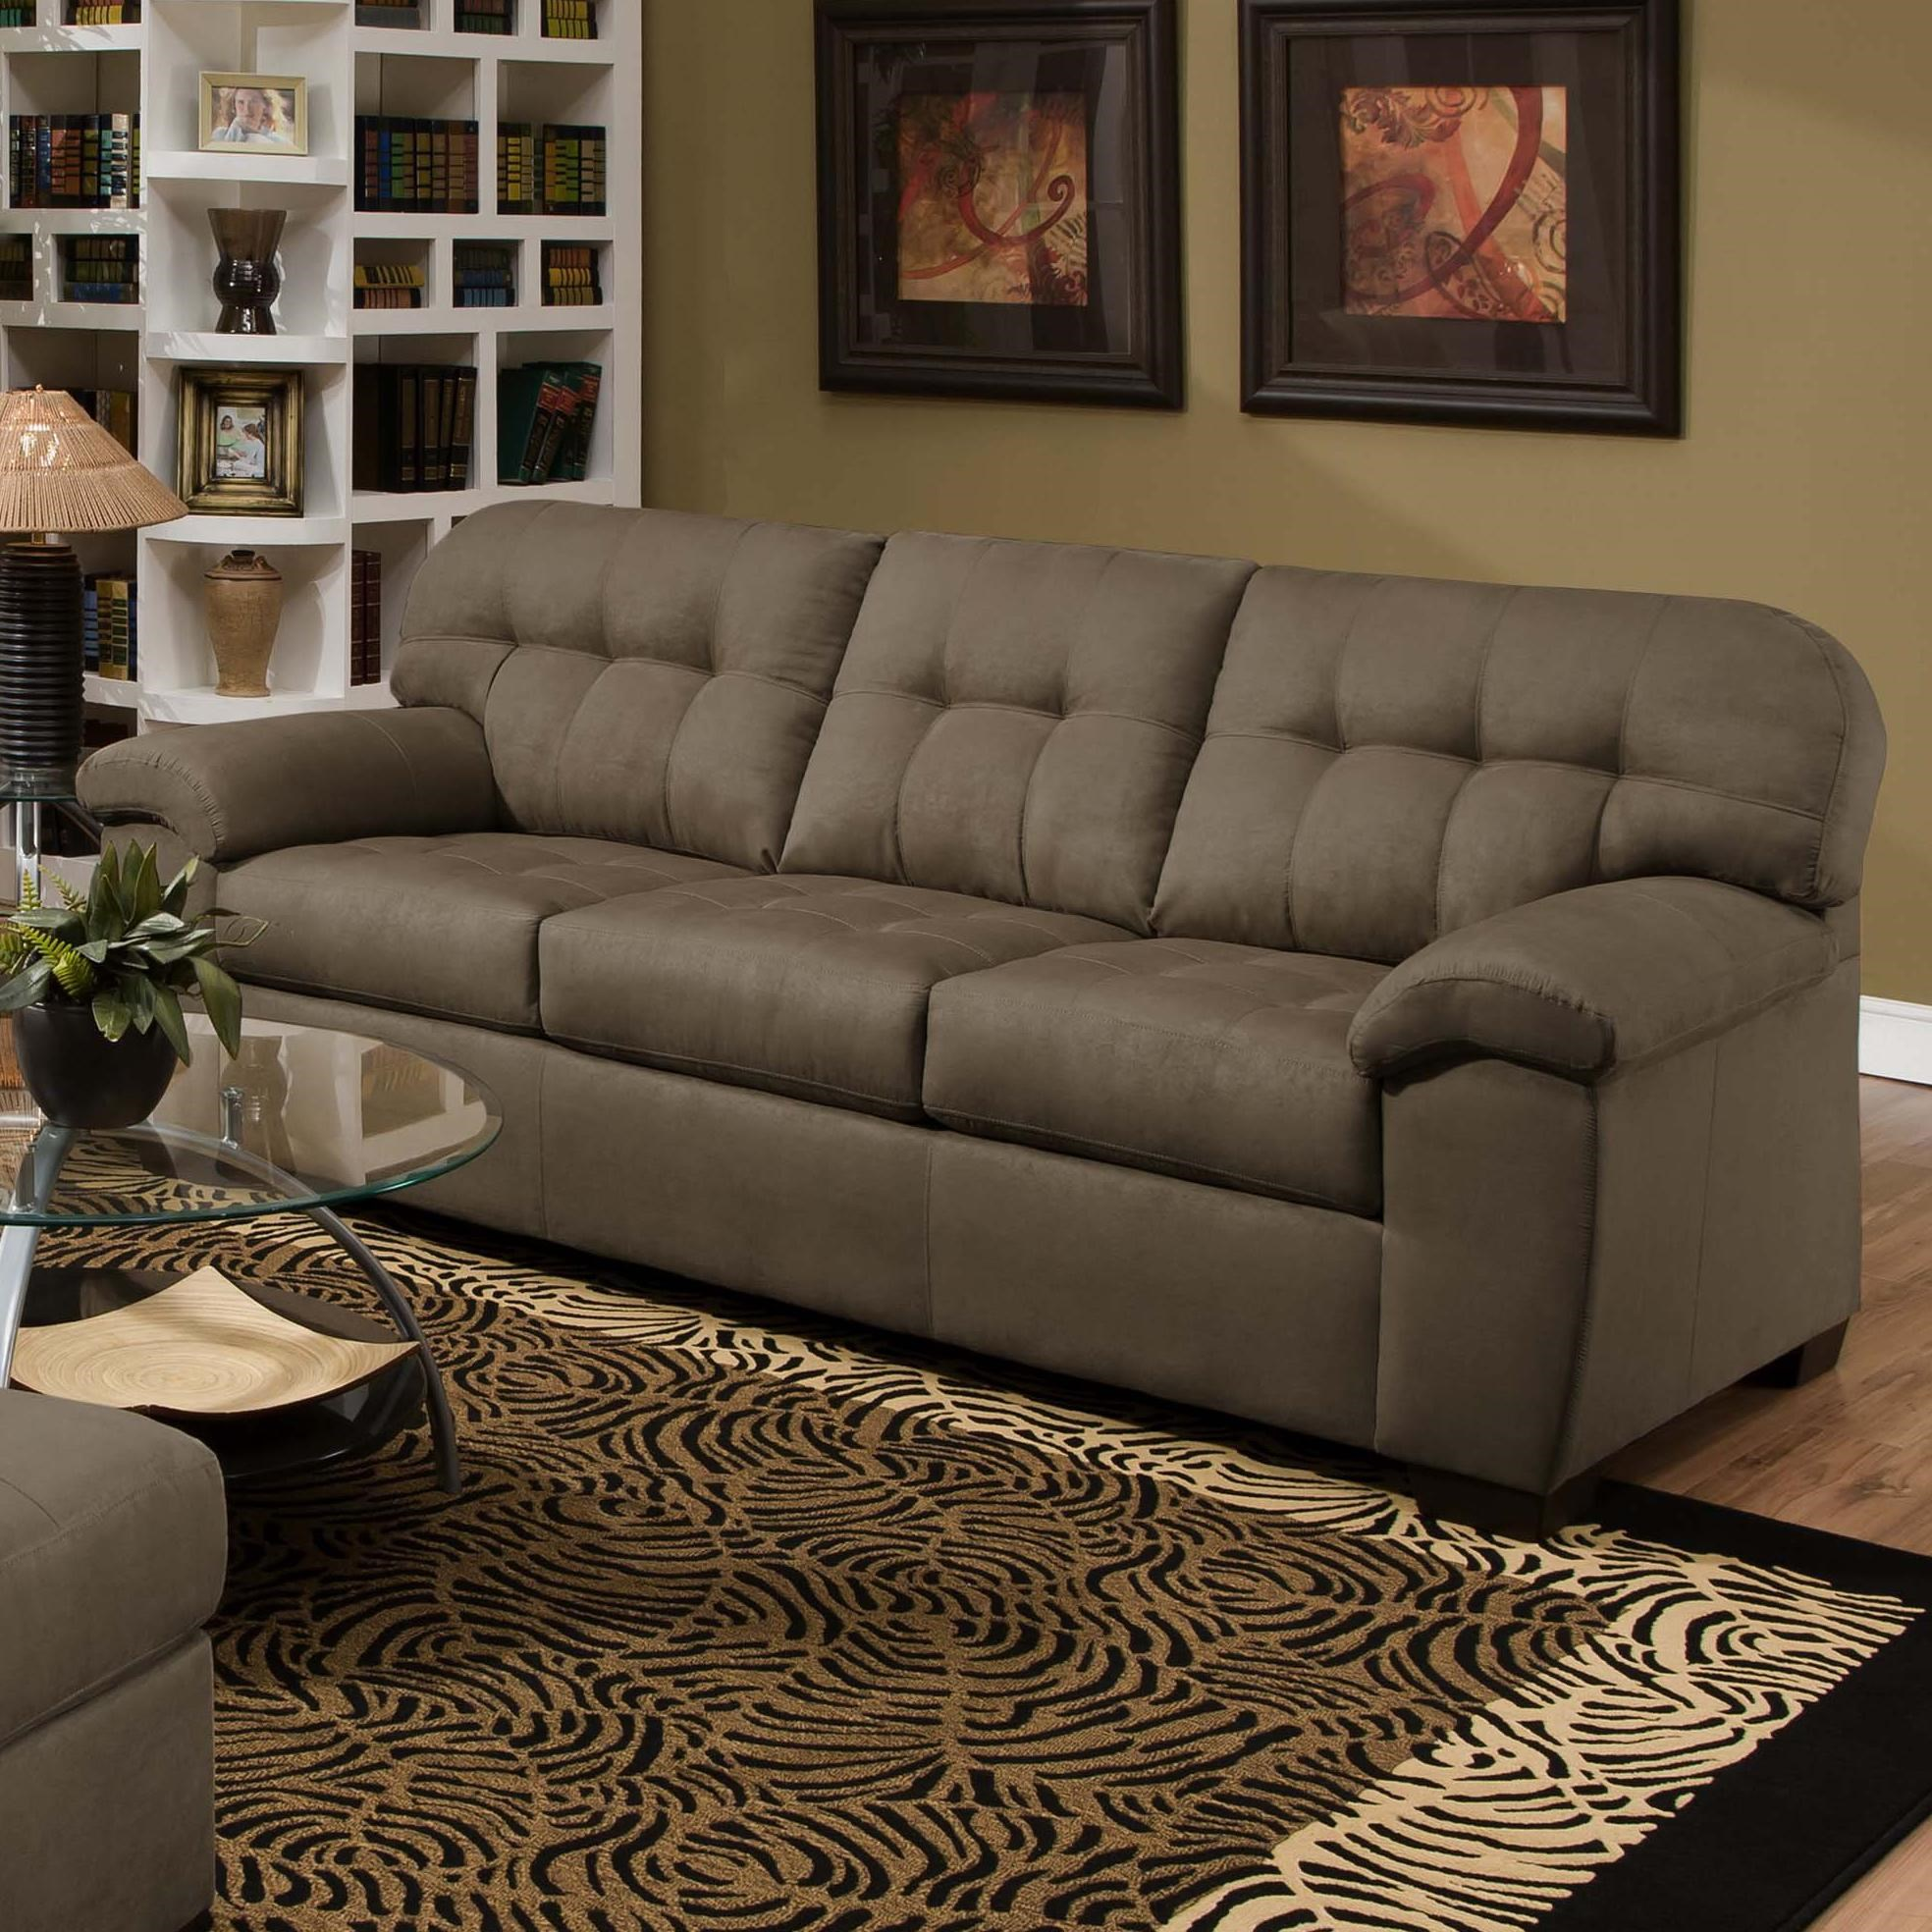 Superbe United Furniture Industries 9558 Transitional Sofa With Tufted Back